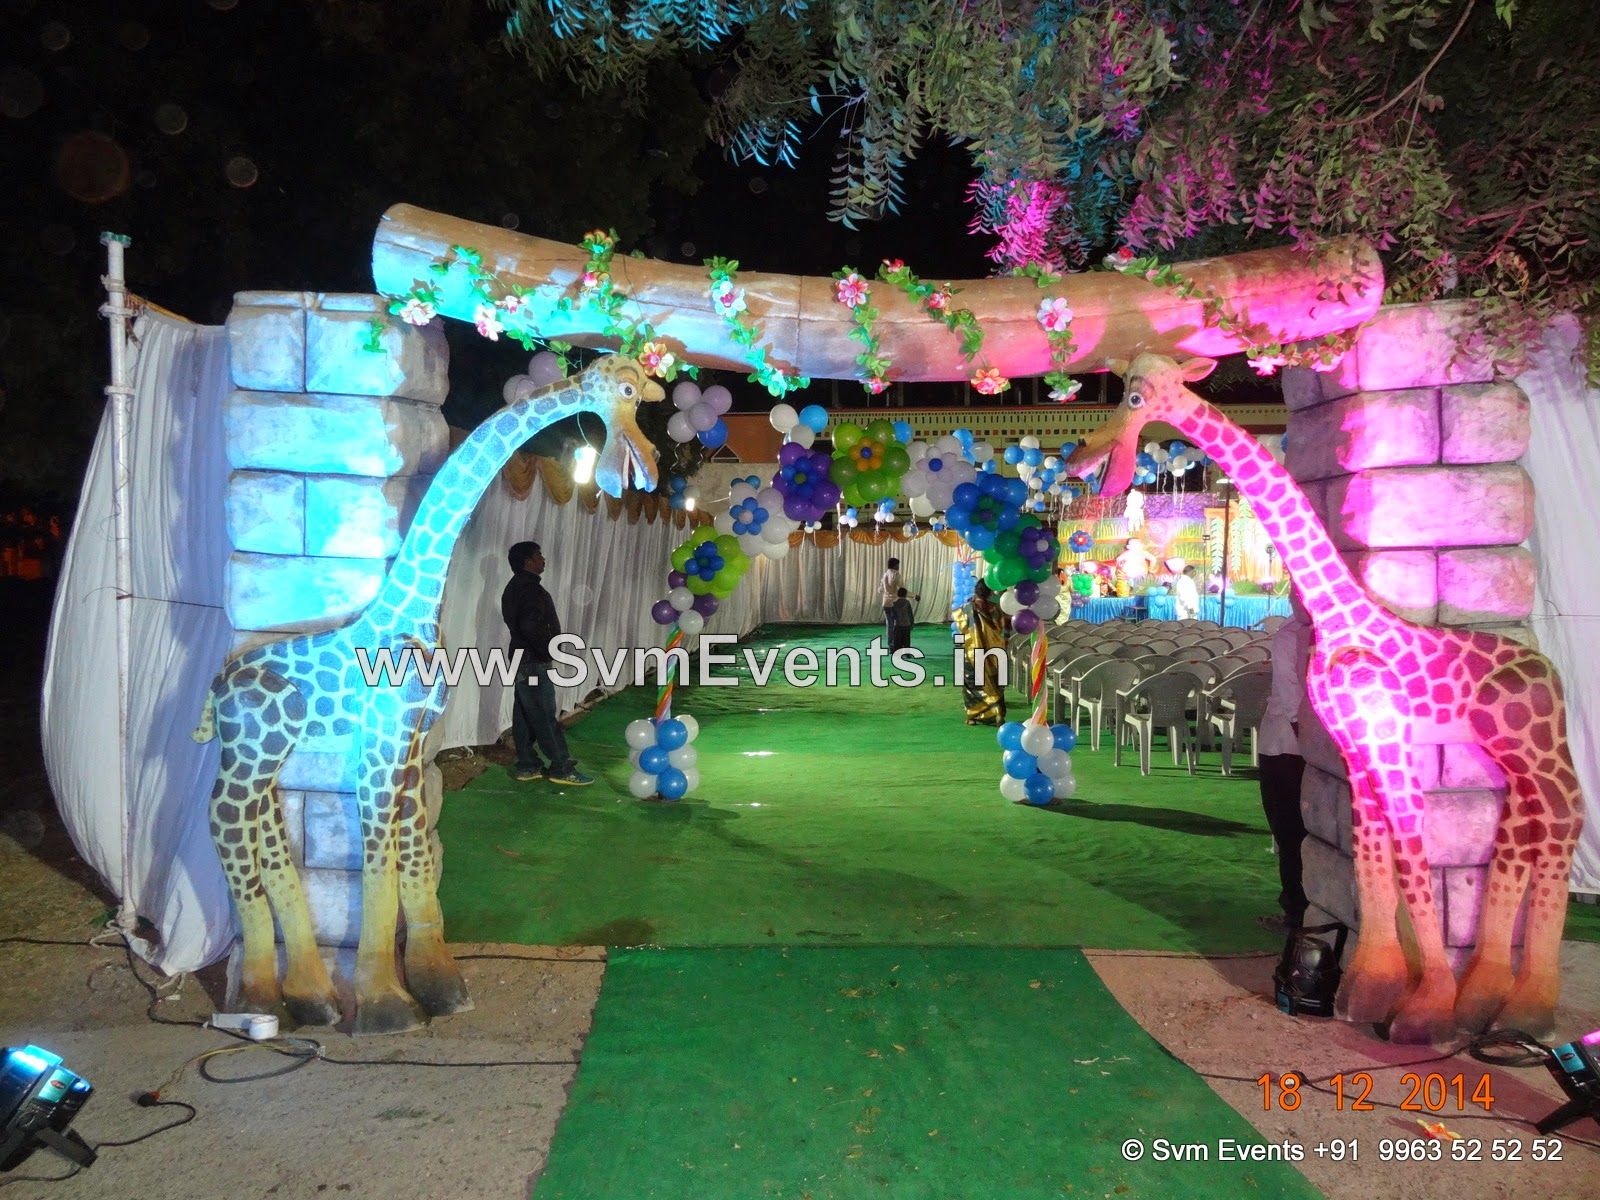 Svm Events 1st Birthday Party Decoration theme party Jungle